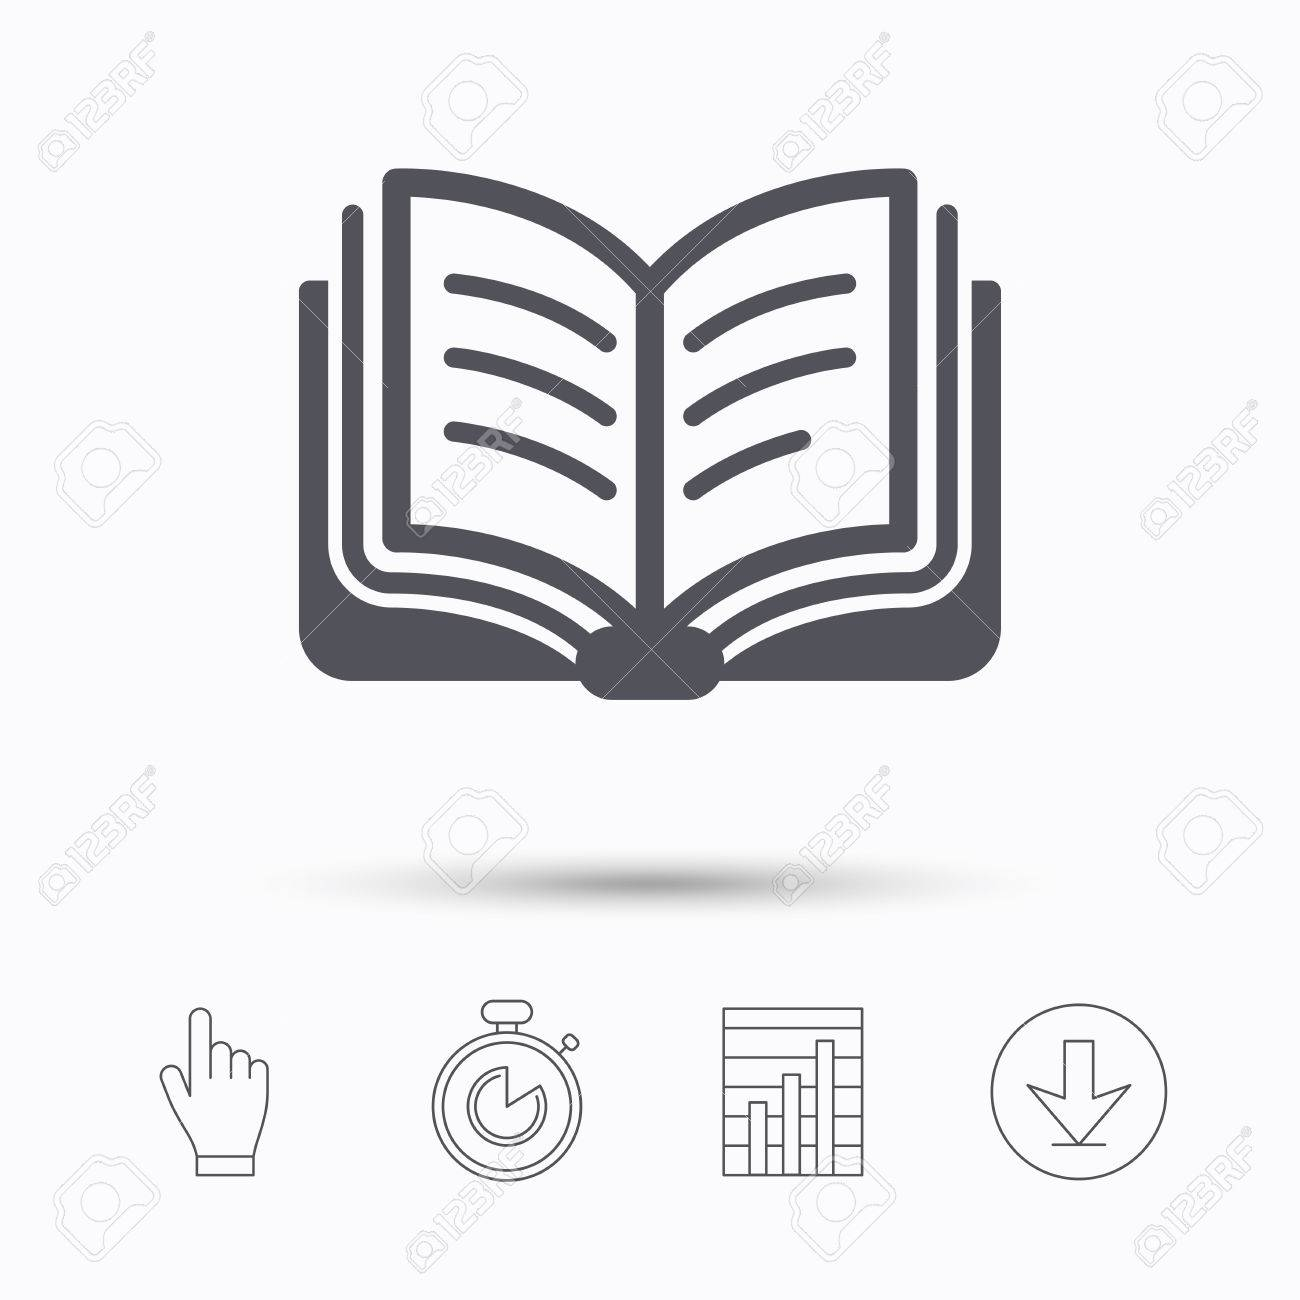 Symbol of literature lit literature search the symbolic meanings book icon study literature sign education textbook symbol study literature sign education textbook symbol stopwatch timer buycottarizona Images